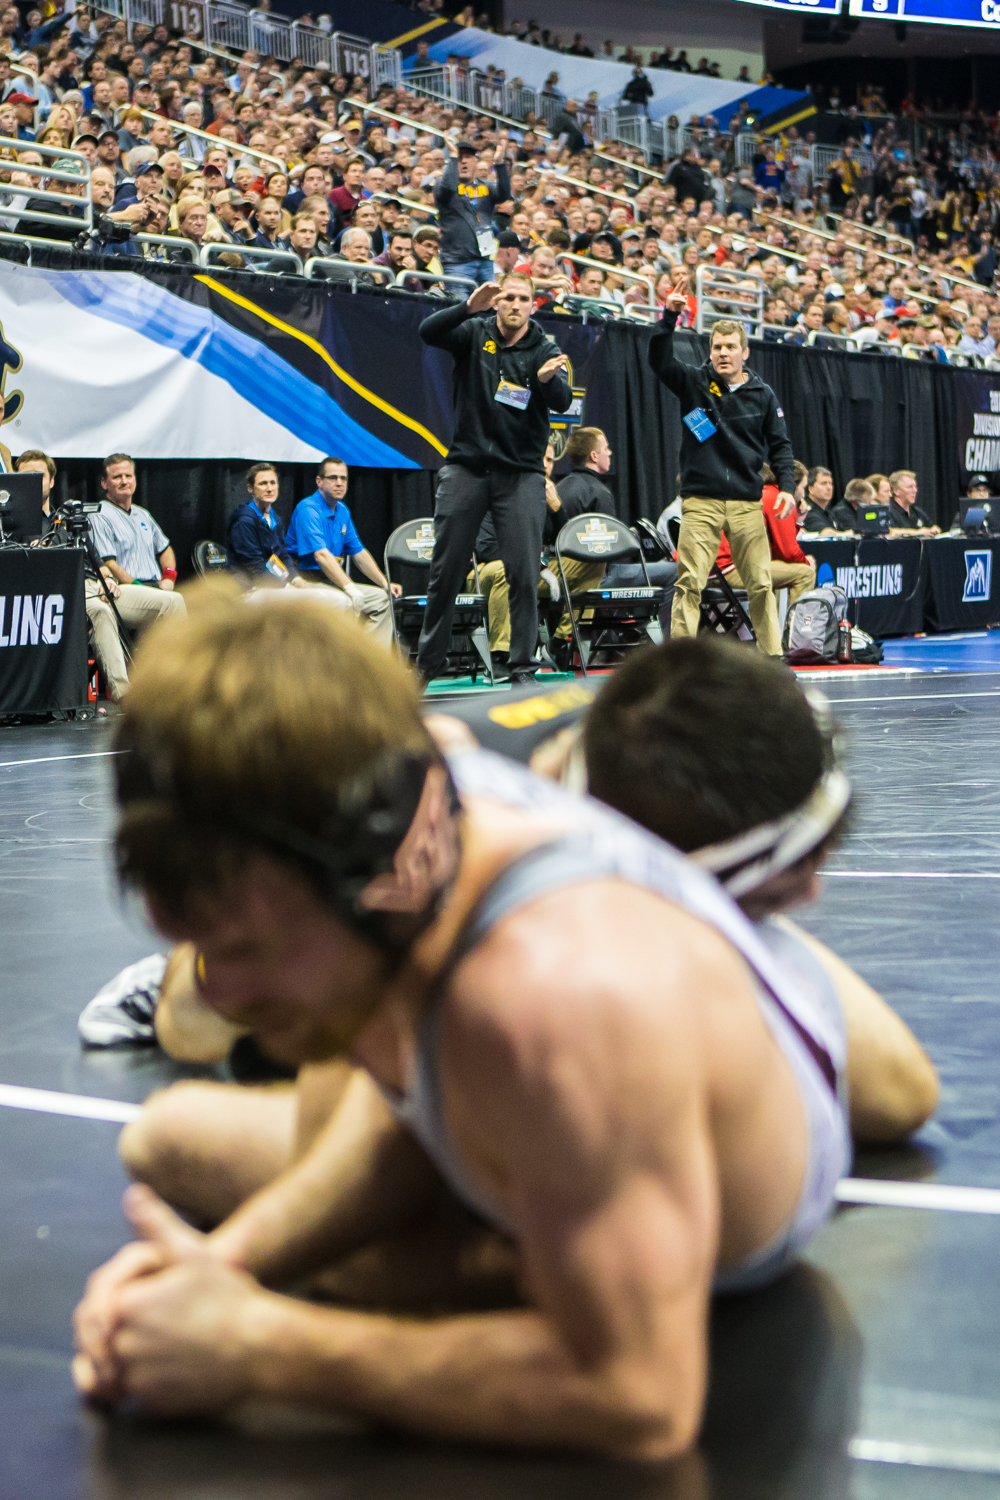 Iowa+coaches+celebrate+as+Iowa%E2%80%99s+149-pound+Pat+Lugo+wrestles+Virginia+Tech%E2%80%99s+Ryan+Blees+during+the+second+session+of+the+2019+NCAA+D1+Wrestling+Championships+at+PPG+Paints+Arena+in+Pittsburgh%2C+PA+on+Thursday%2C+March+21%2C+2019.+Lugo+won+in+the+second+overtime+period+by+sudden+victory%2C+4-2.